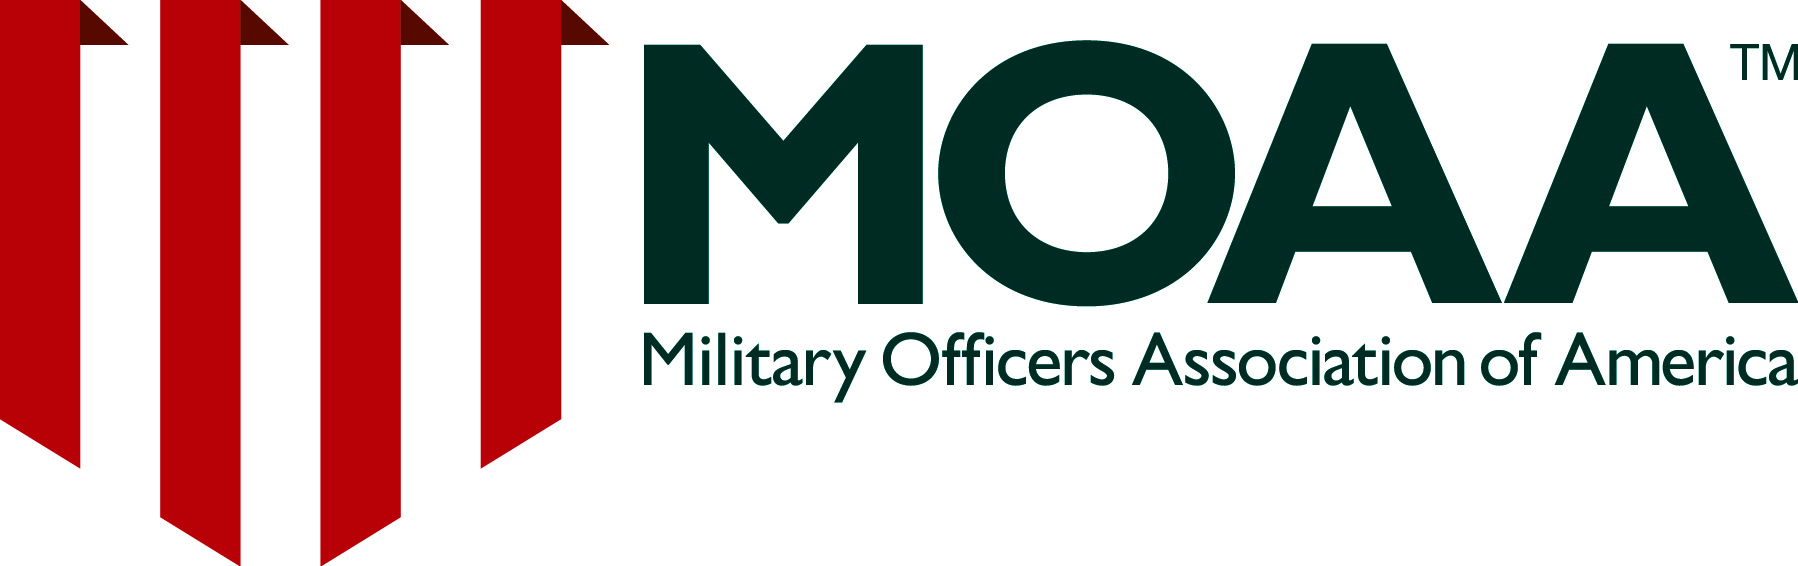 Military Officers Association of America (MOAA) Logo